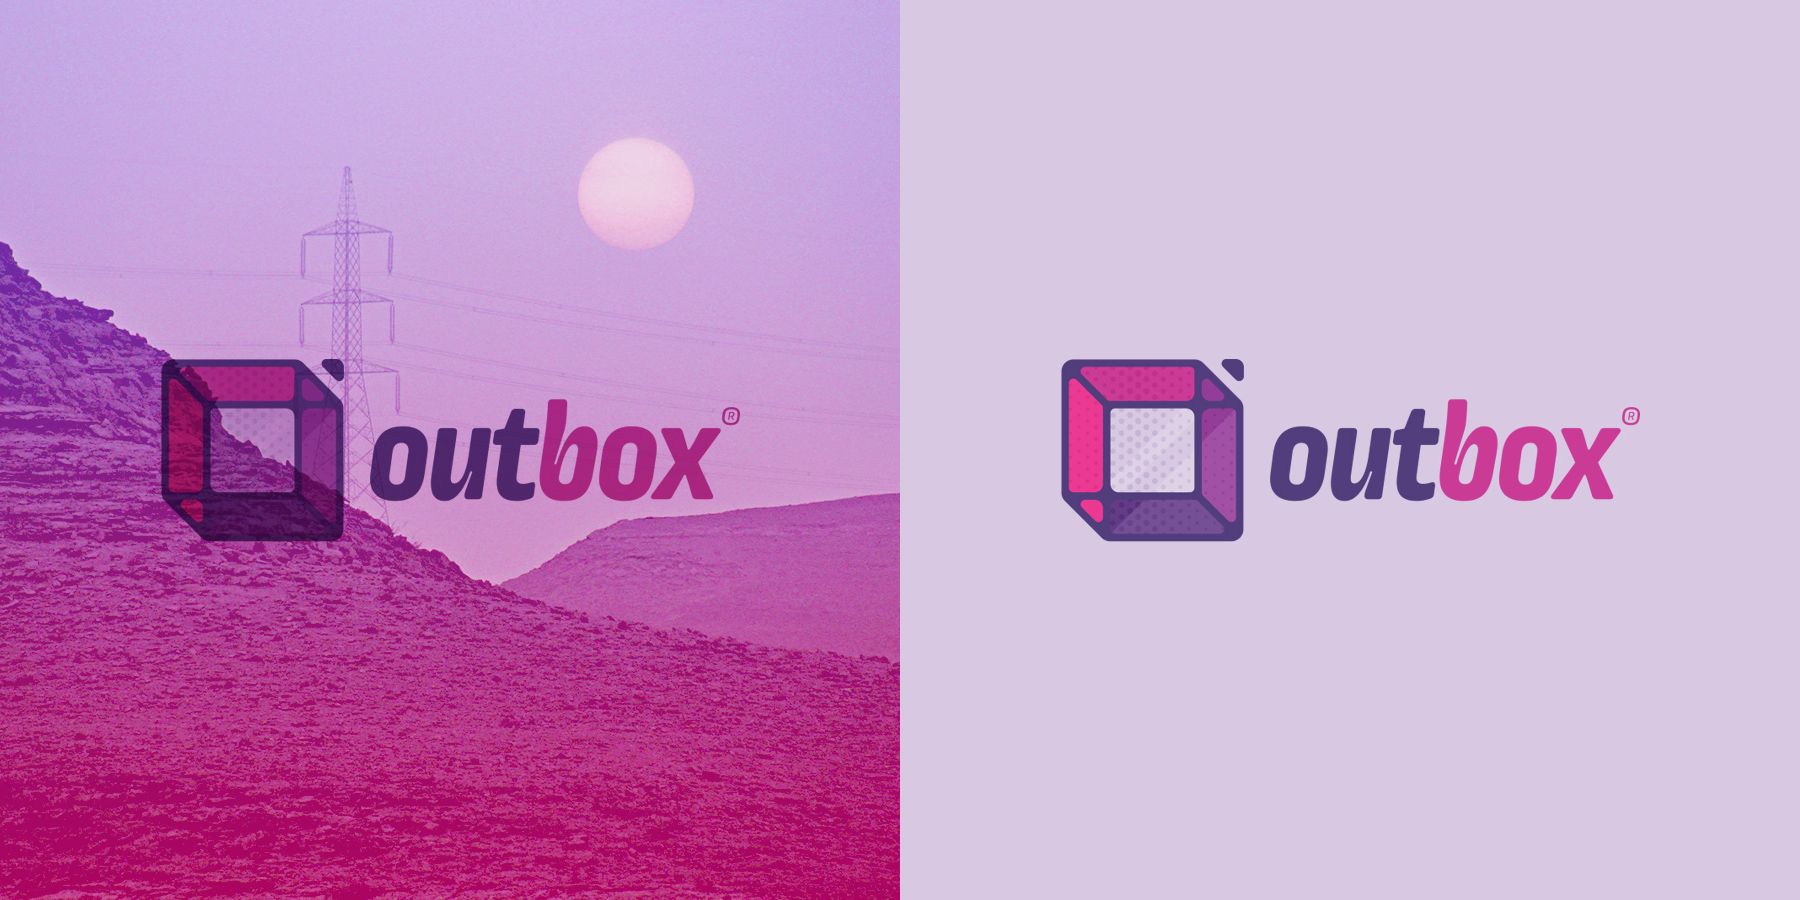 'Outbox'